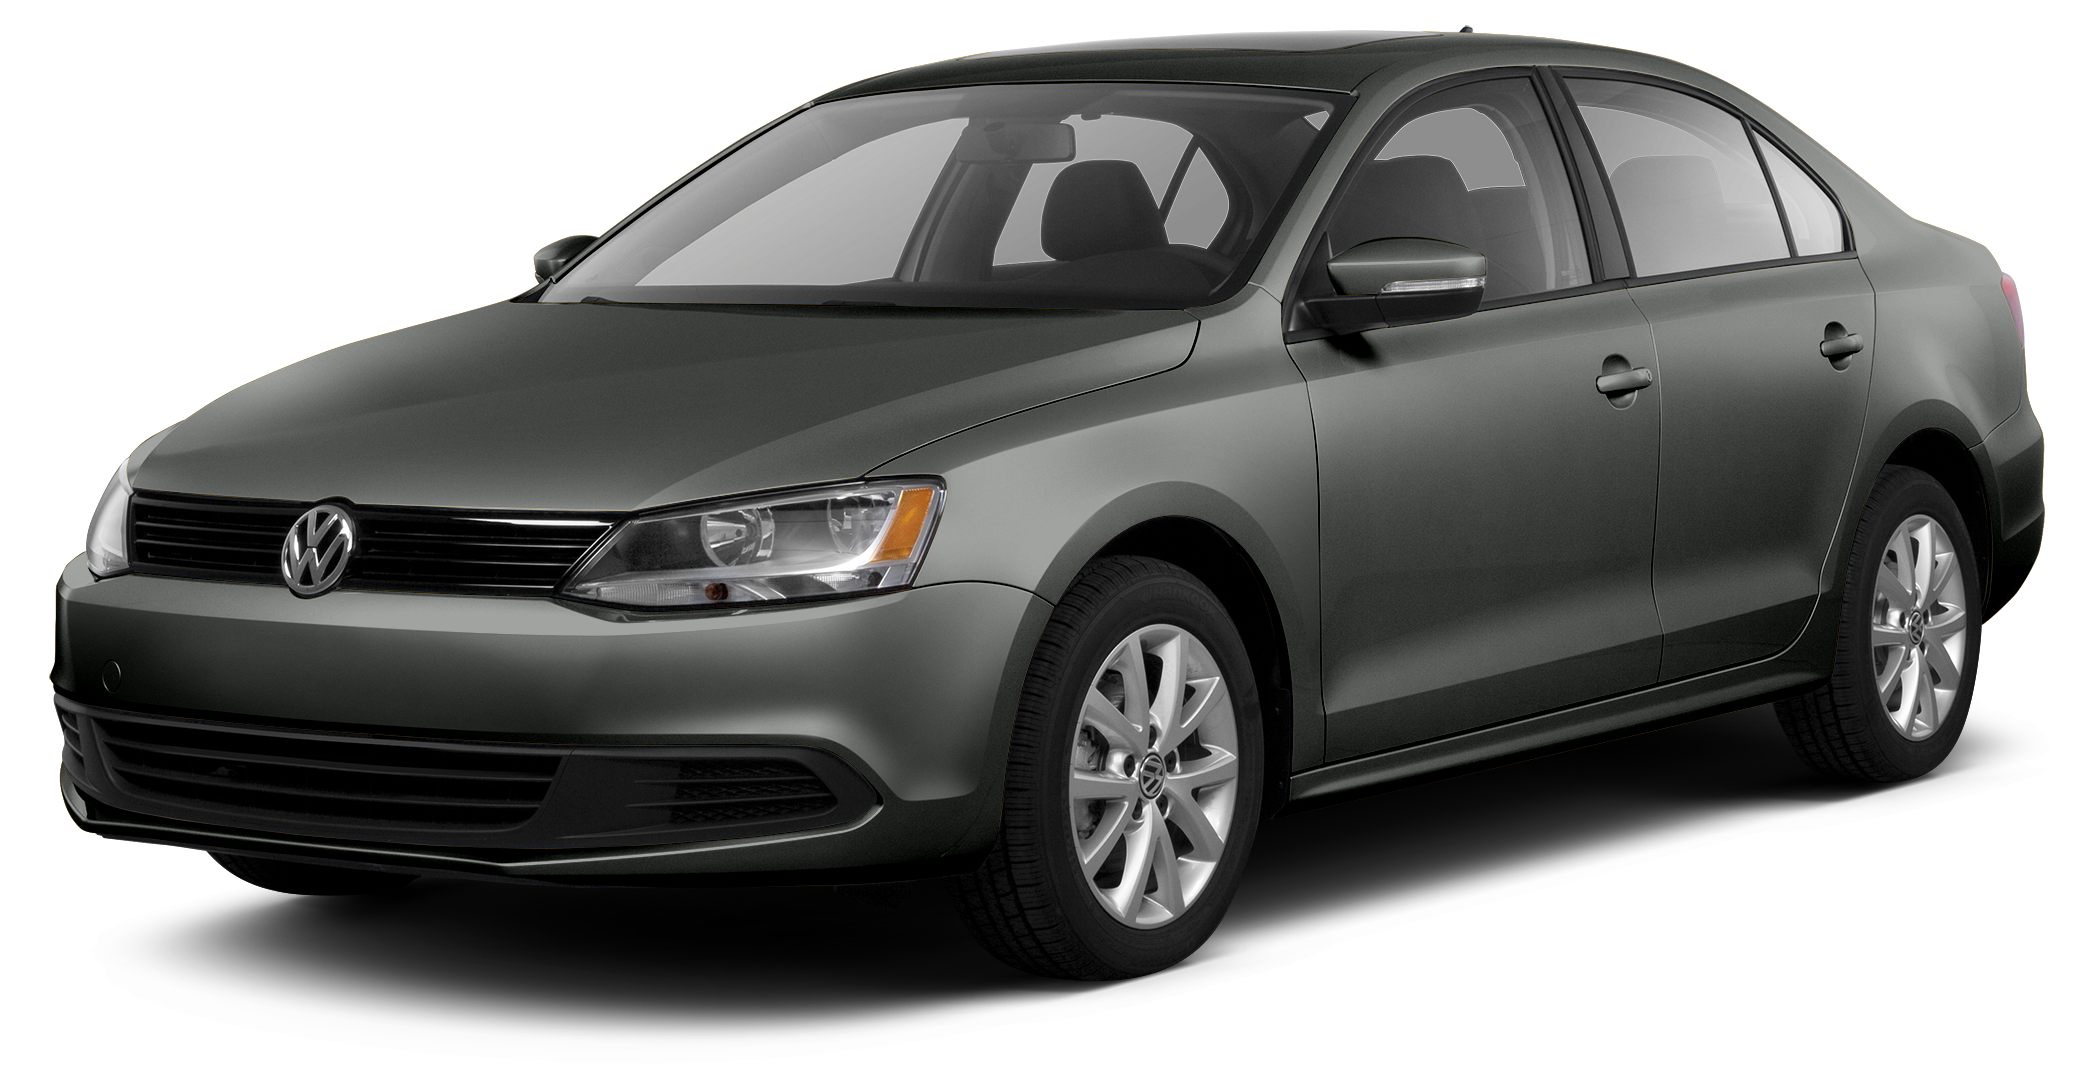 2013 Volkswagen Jetta 20 S  COME SEE THE DIFFERENCE AT TAJ AUTO MALL WE SELL OUR VEHICLE